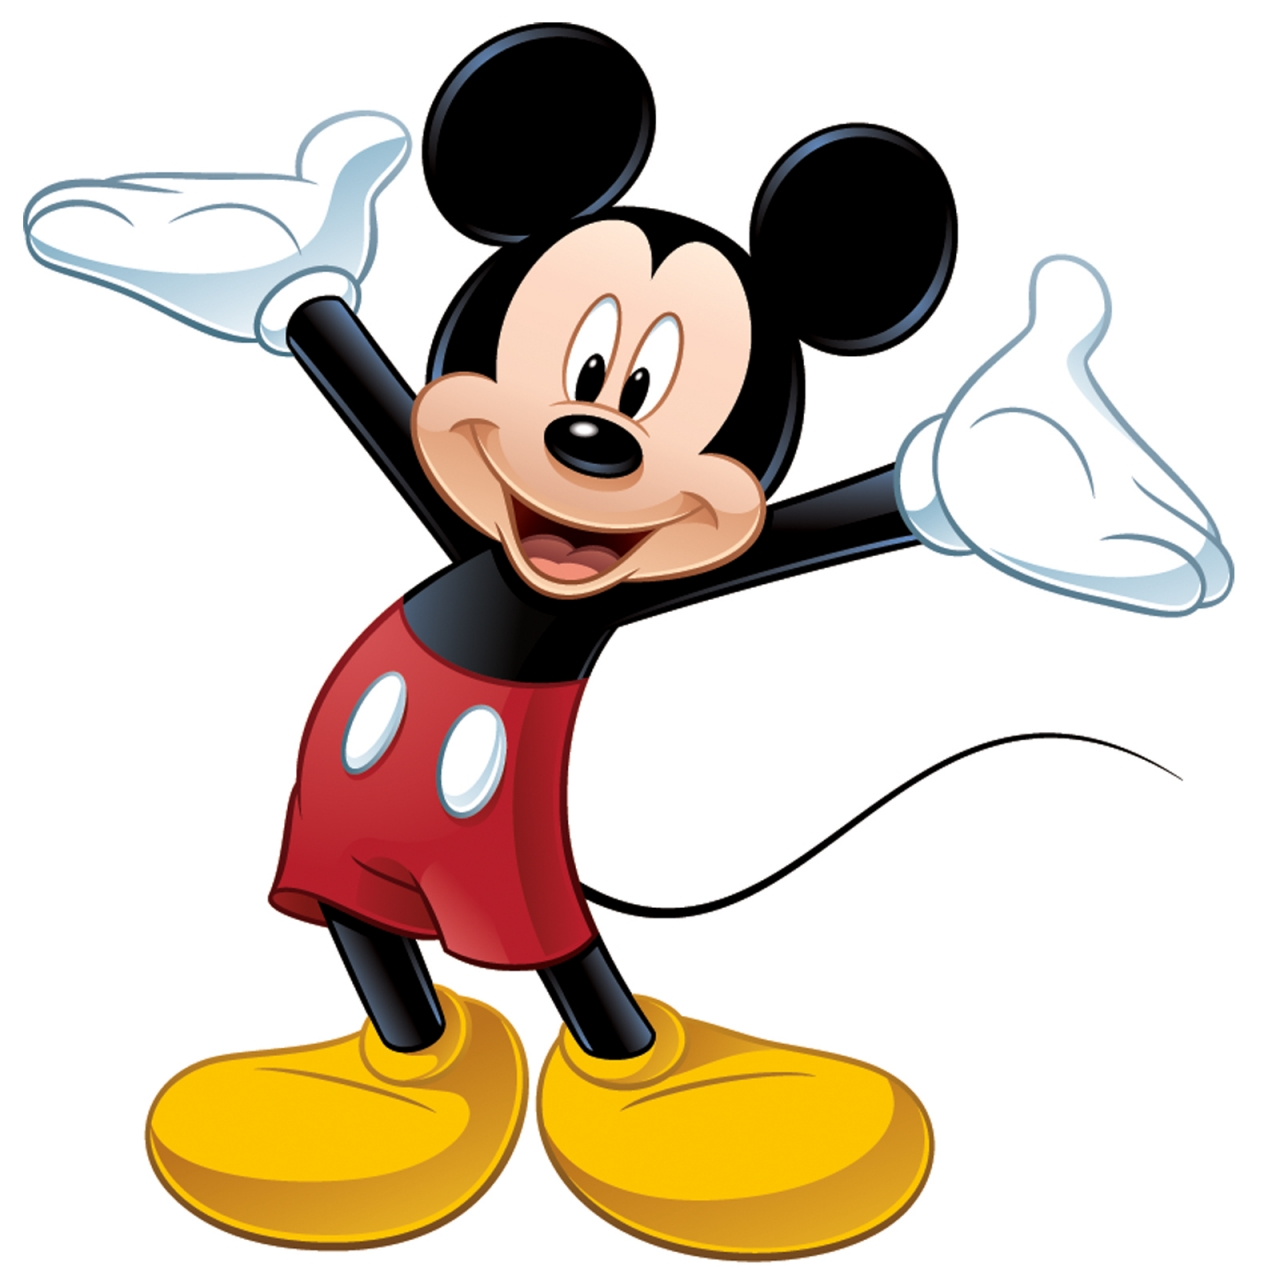 1280x1280 Mickey Mouse Cartoon Images Free Download Clip Art Jpg